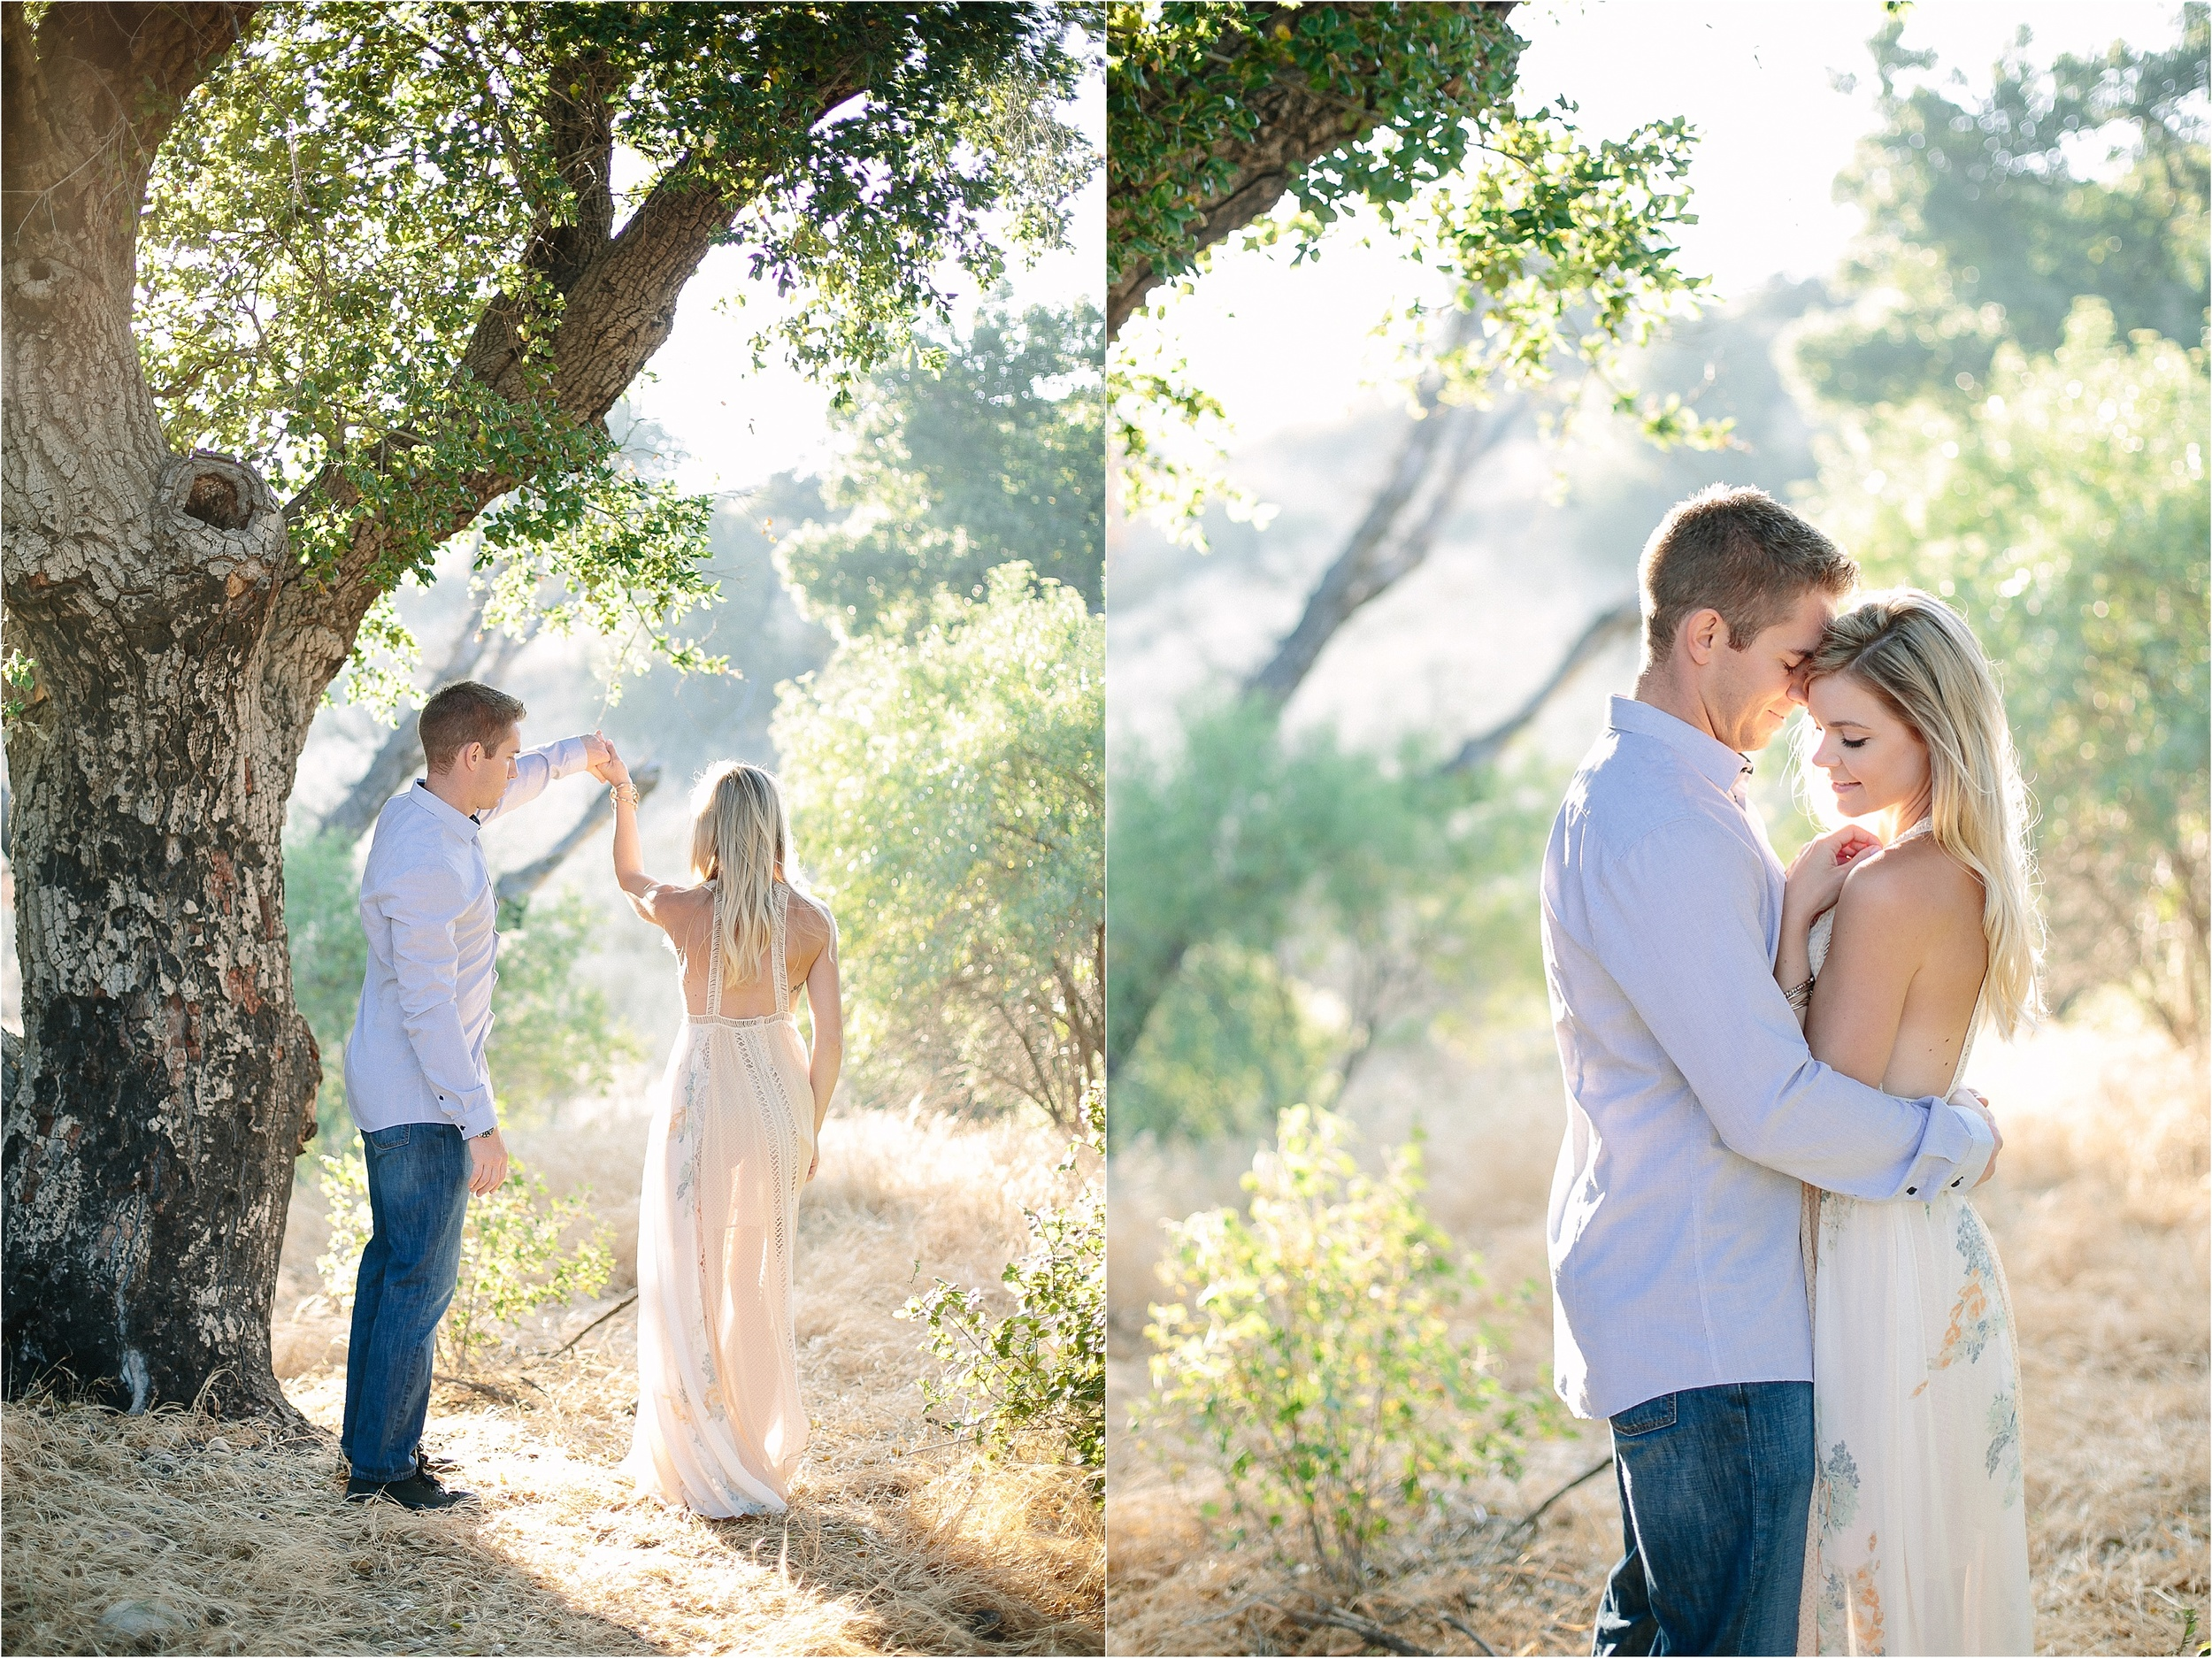 Santa Clarita Romantic Engagement Photo